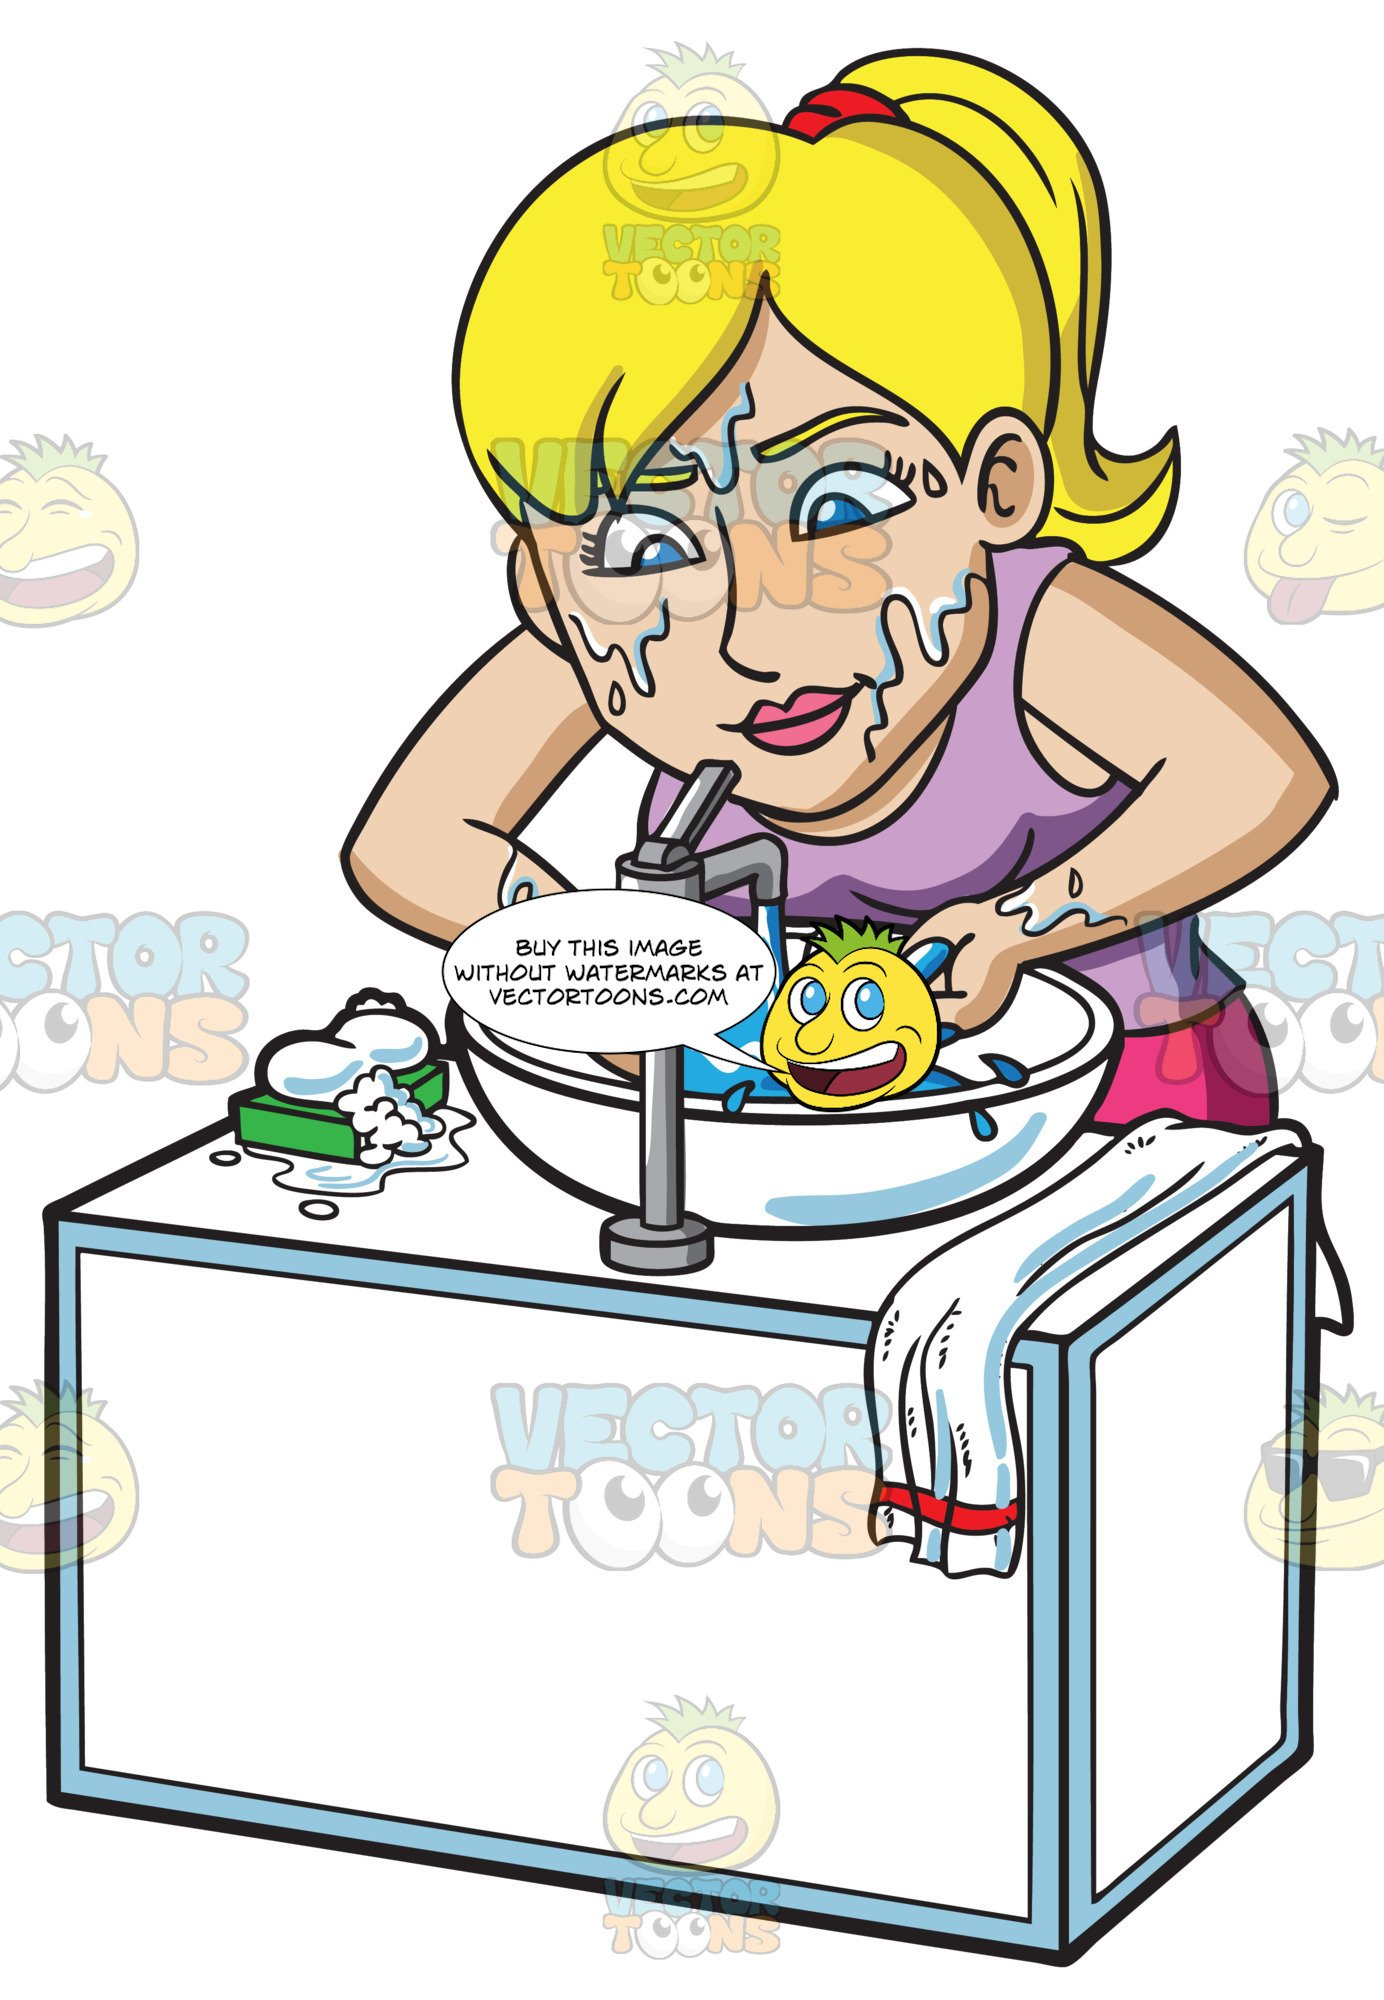 Washing face with soap clipart clip art transparent stock A Blonde Woman Washing Her Face With A Bar Soap clip art transparent stock